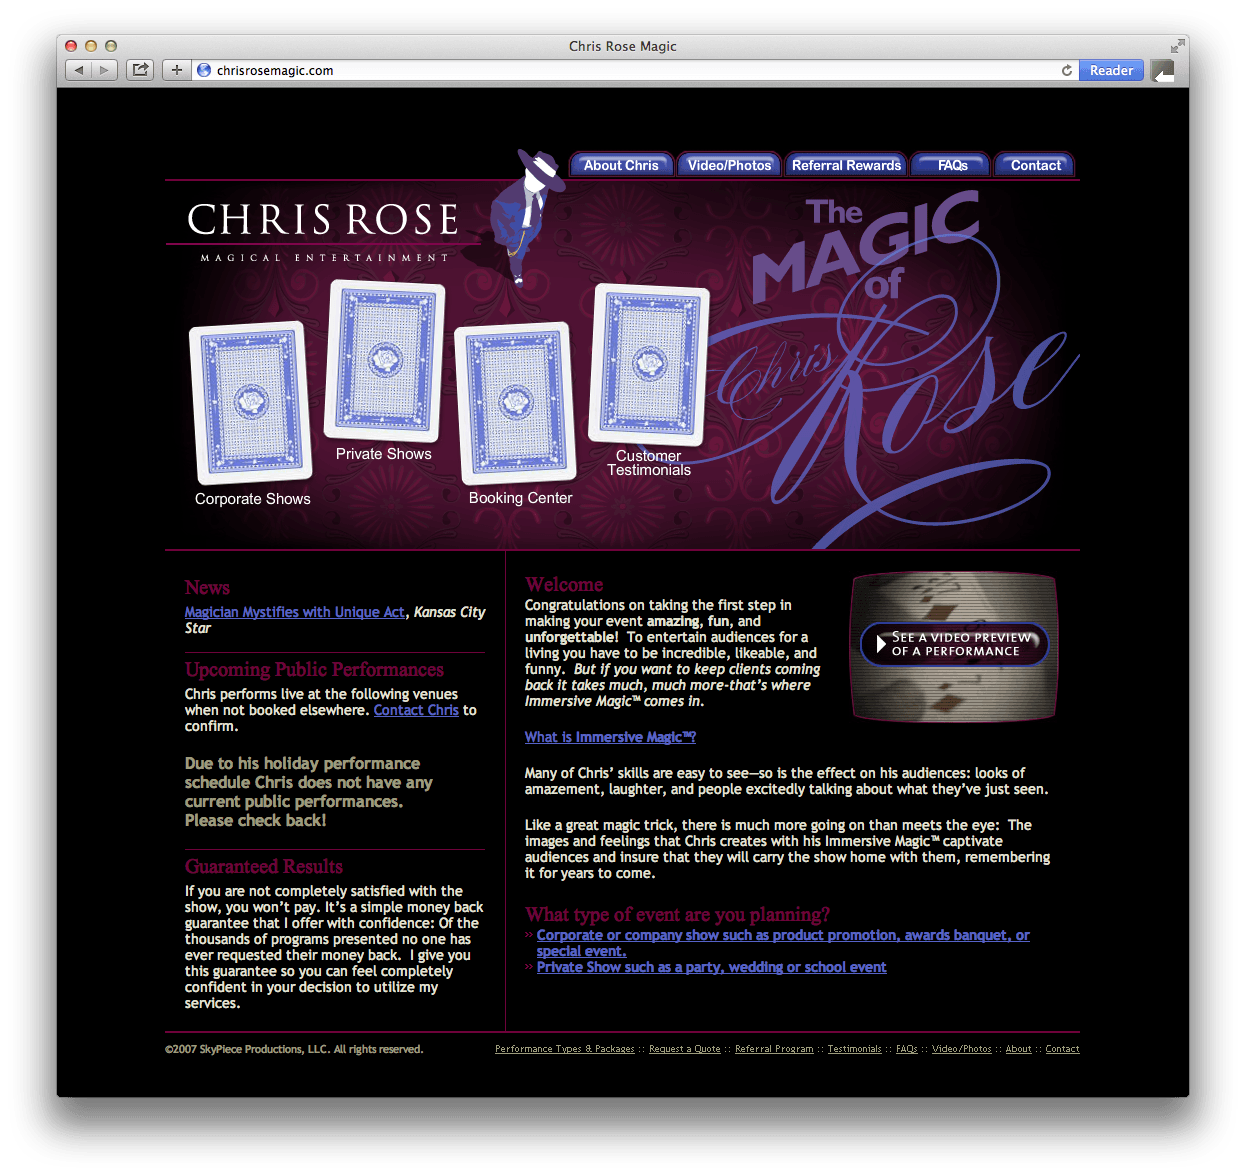 Chris Rose Magic Website Design